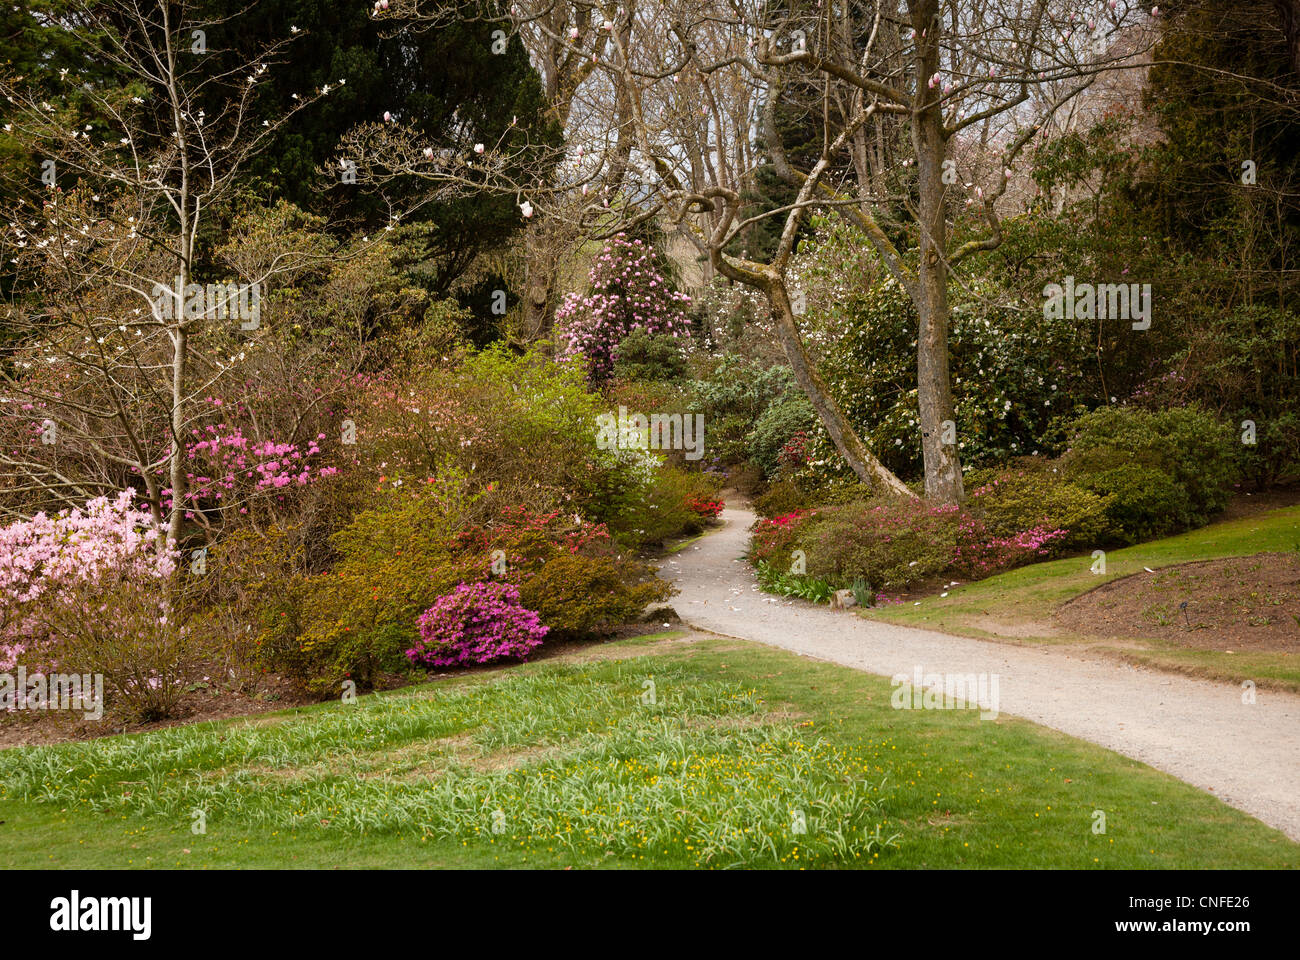 Flowering Bushes Stock Photos & Flowering Bushes Stock Images - Alamy